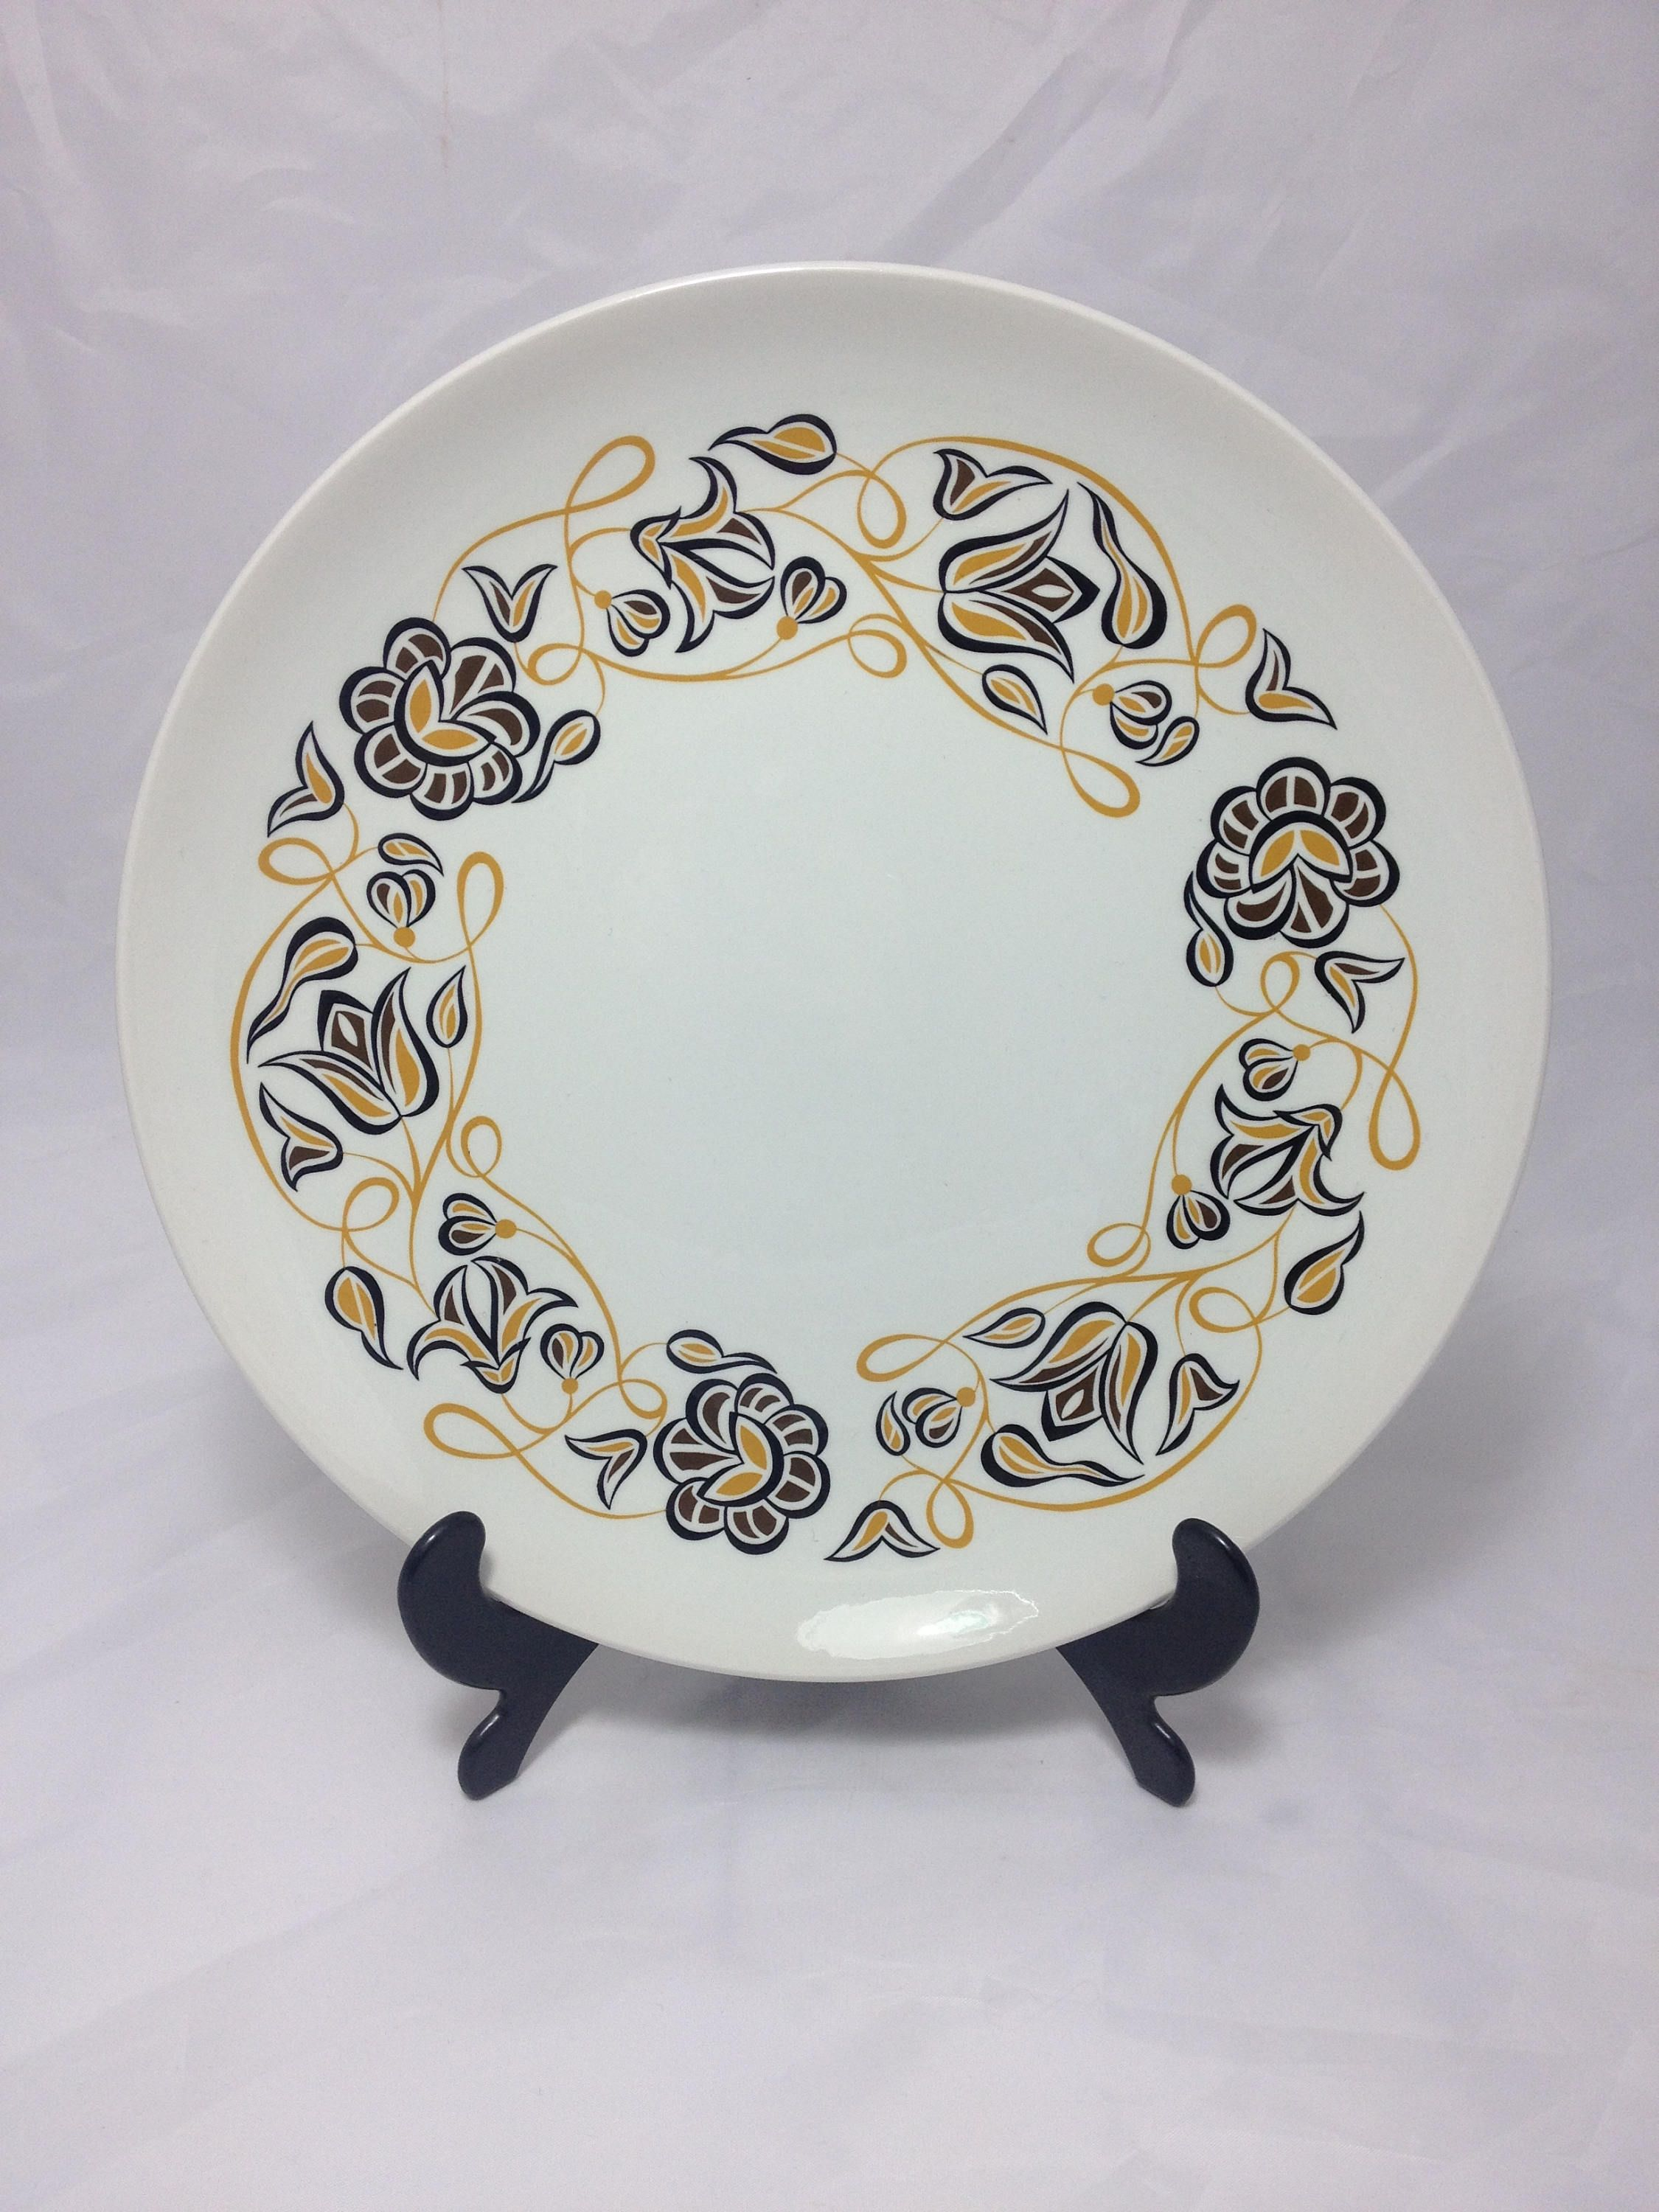 Poole Pottery Dinner Plate Desert Song Pattern Contour Shape Plate 1960\u0027s Mid Century Modern Vintage by : poole pottery dinner plates - pezcame.com